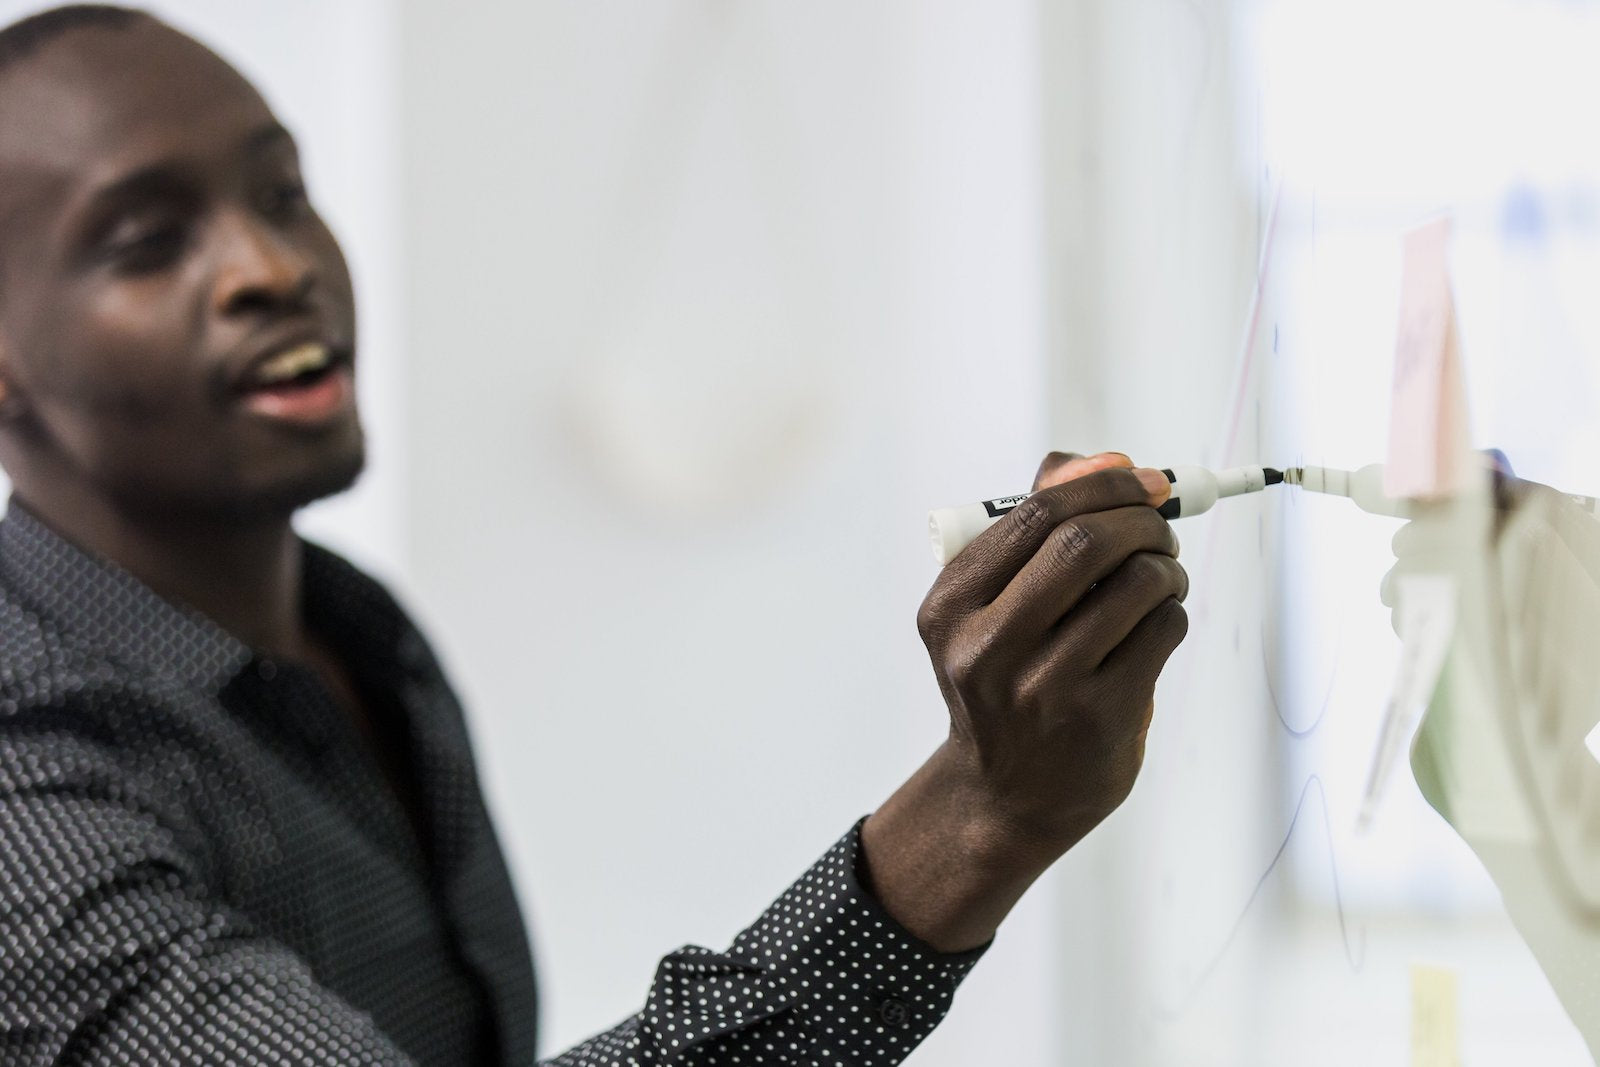 An image of a man writing his business opportunity ideas on a white board.